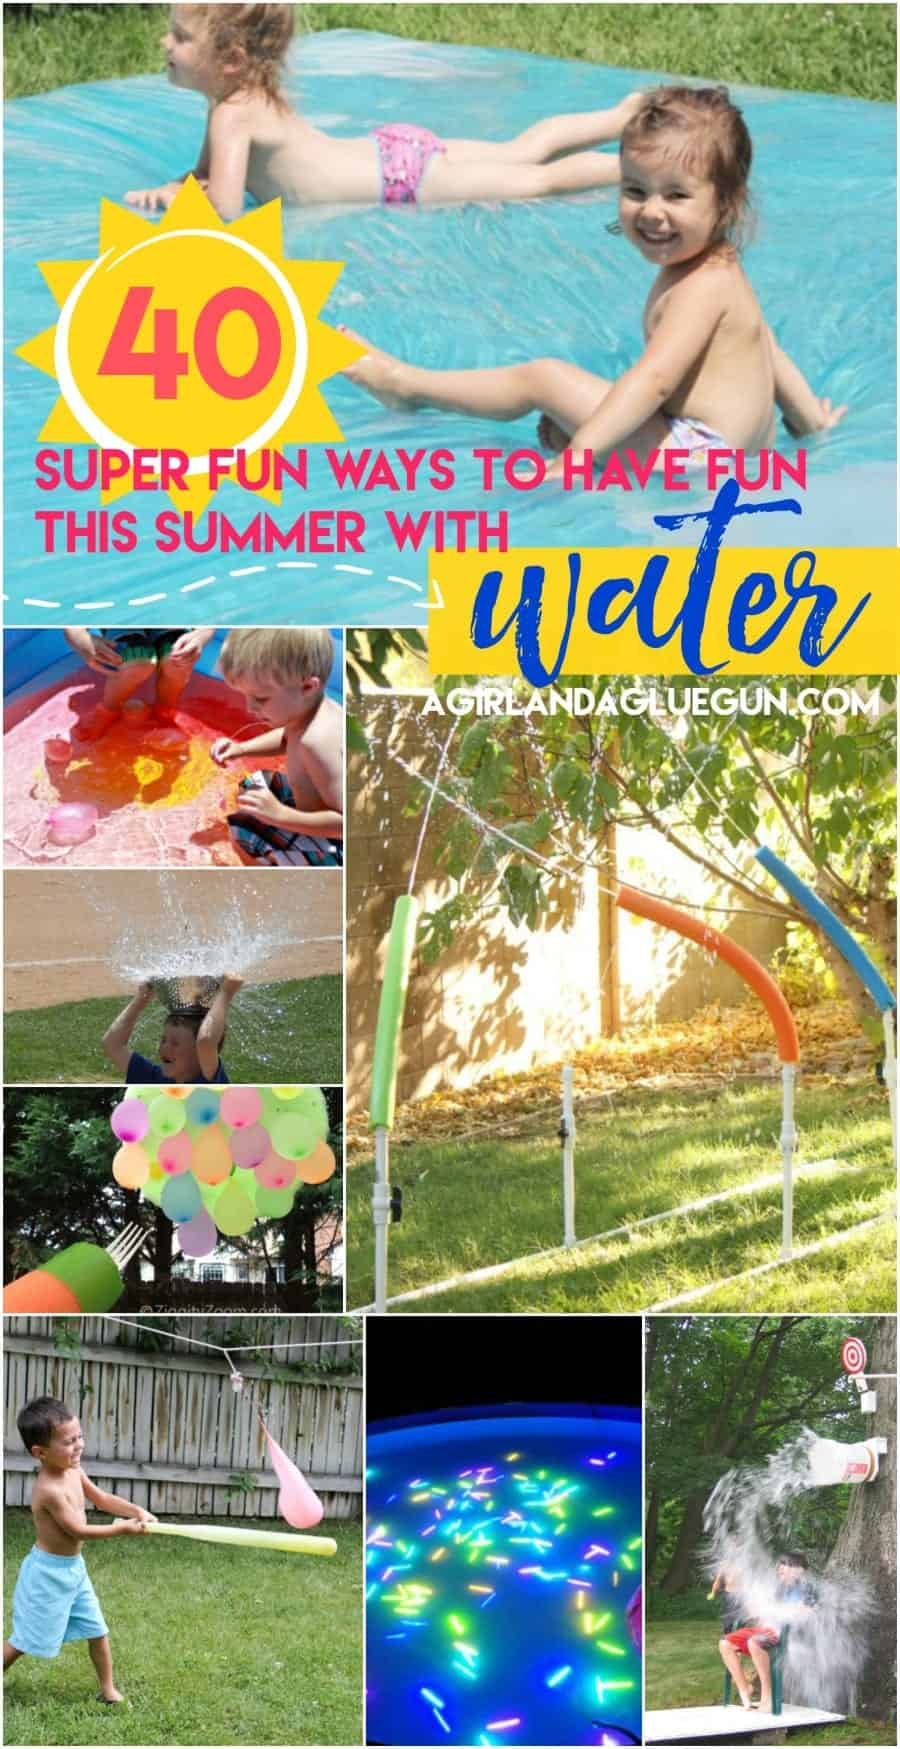 over 40 super fun ways to have fun this summer with water to cool off on these hot days